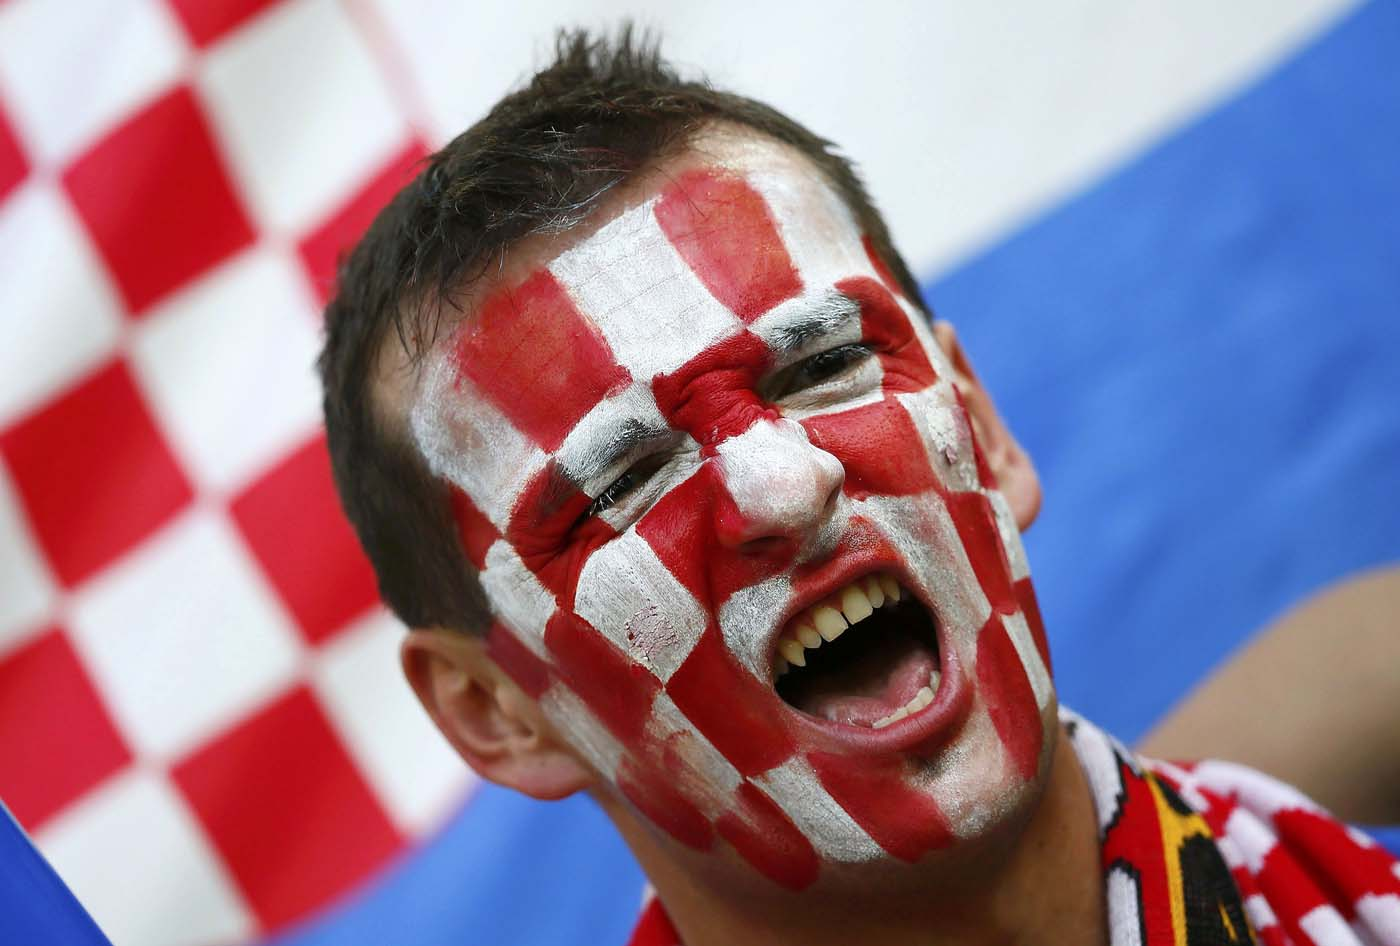 Fan of Croatia cheers before their Group C Euro 2012 soccer match against Spain at the PGE Arena in Gdansk